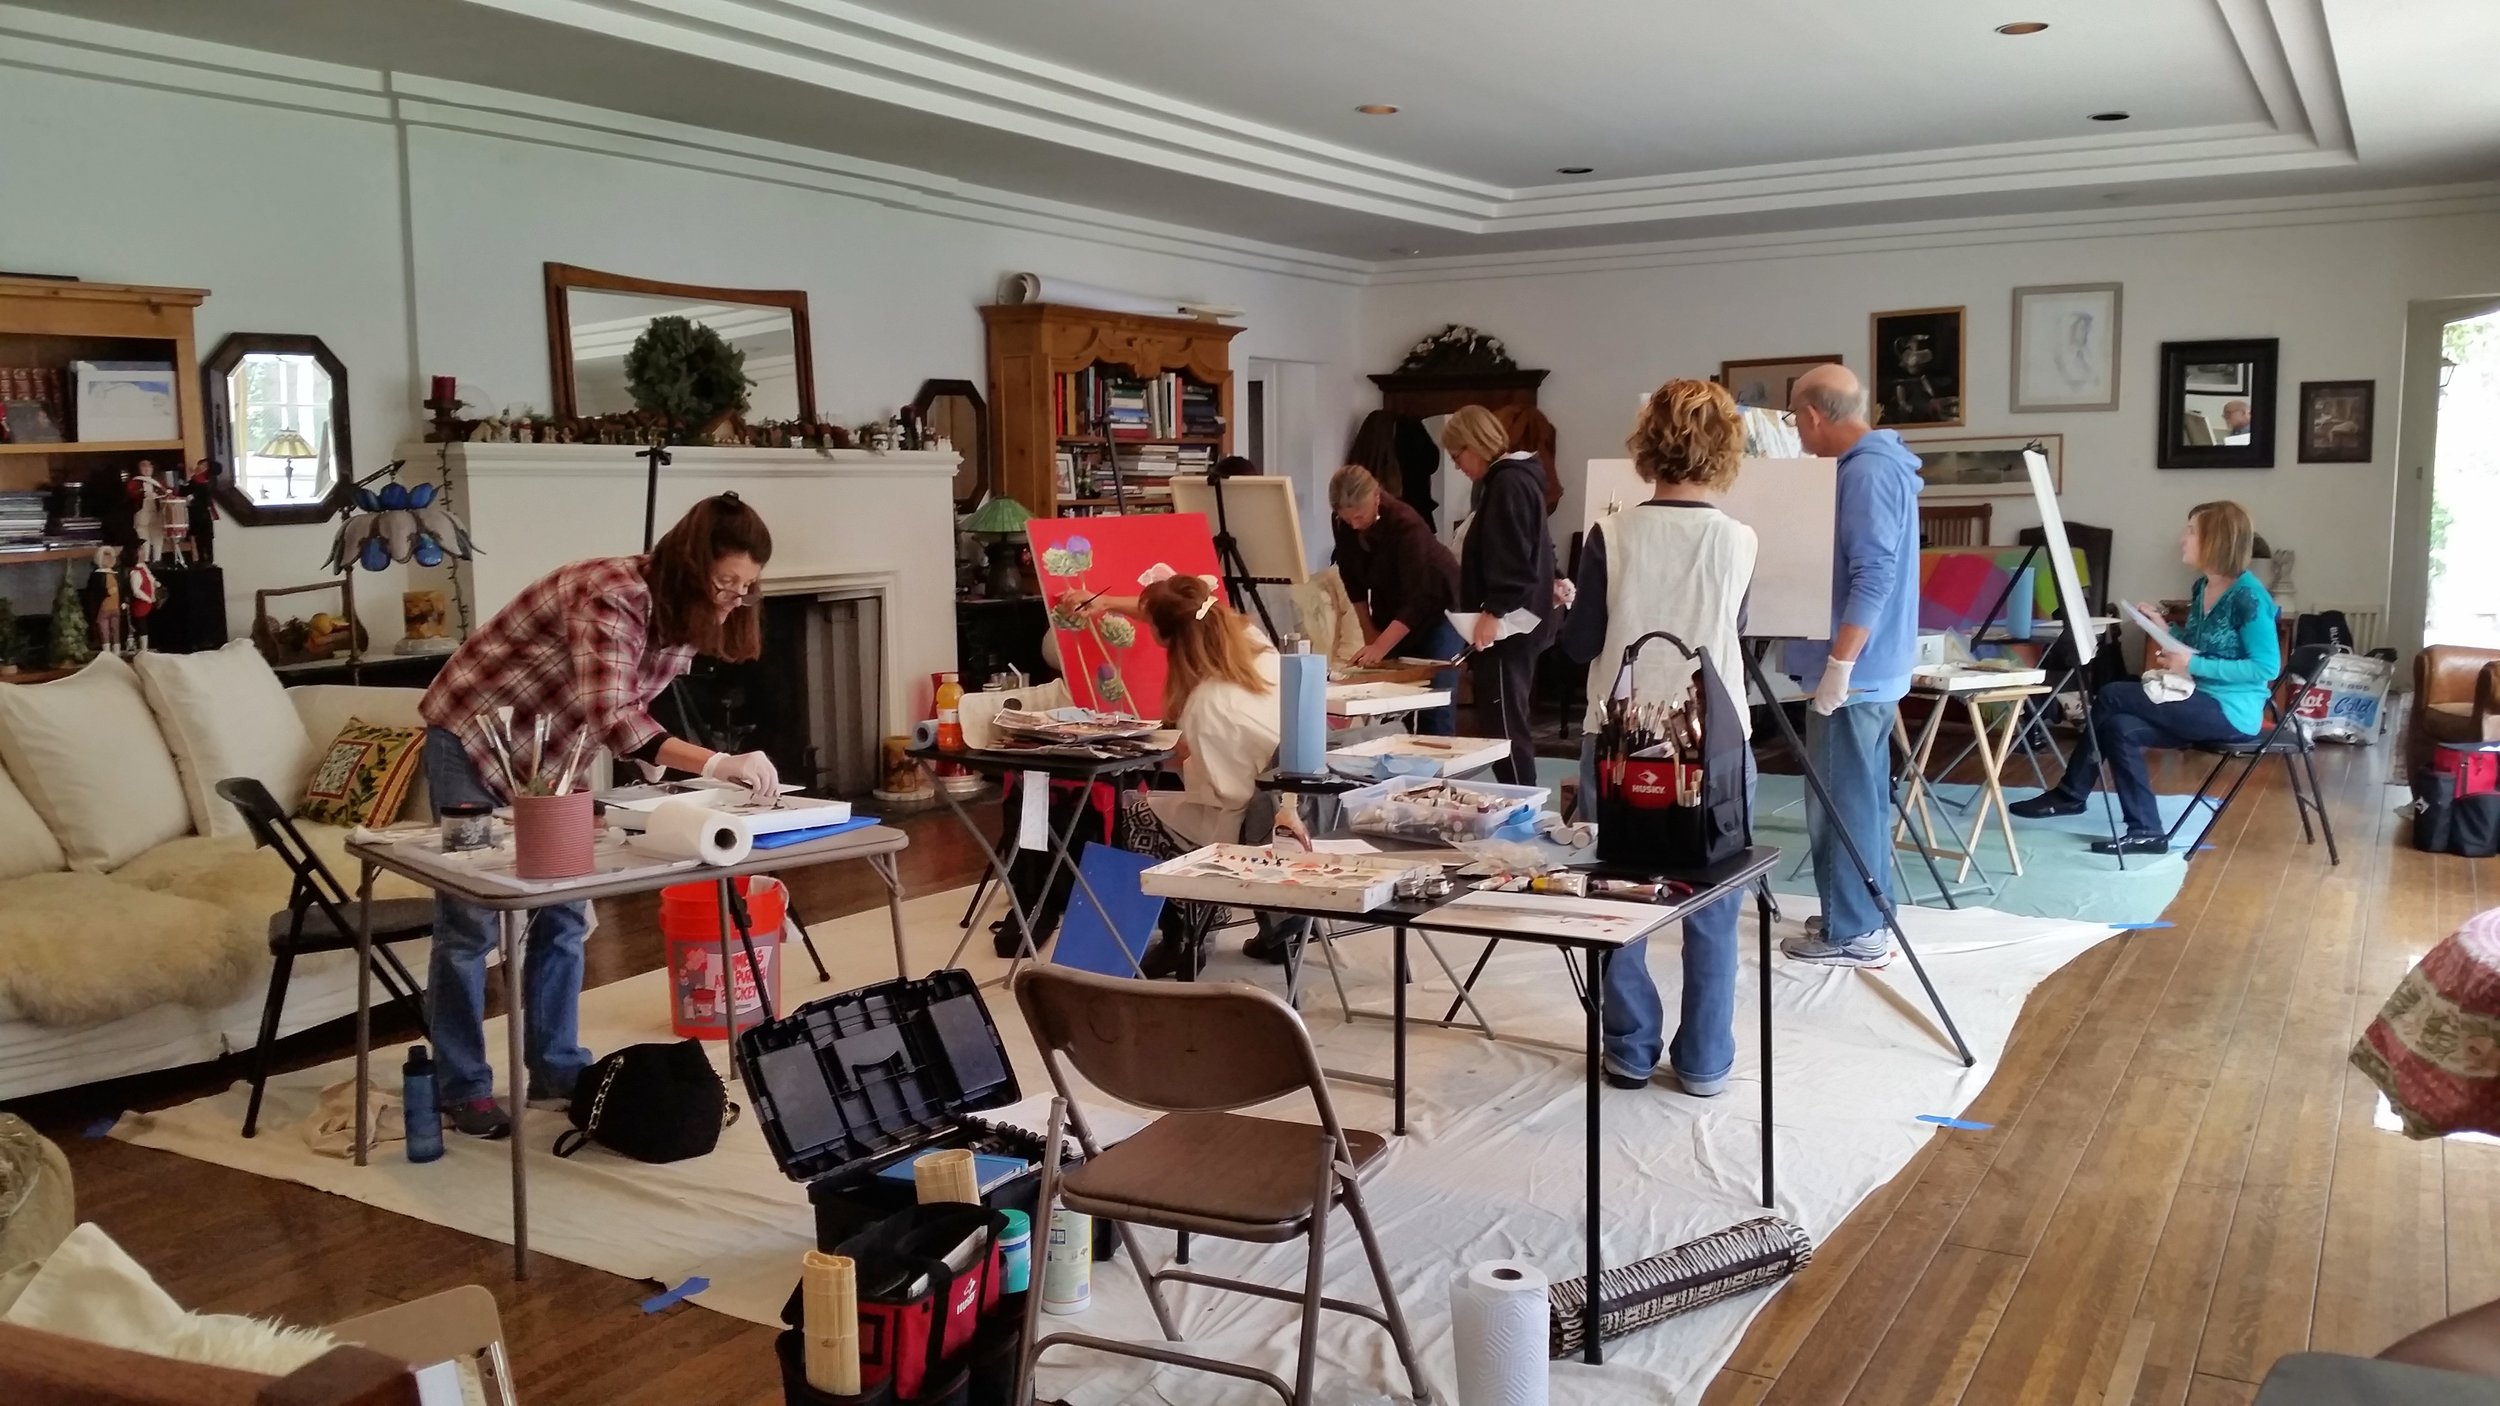 Oil Painting Workshop Directed by Bobbie Moline Kramer - Spring 2015